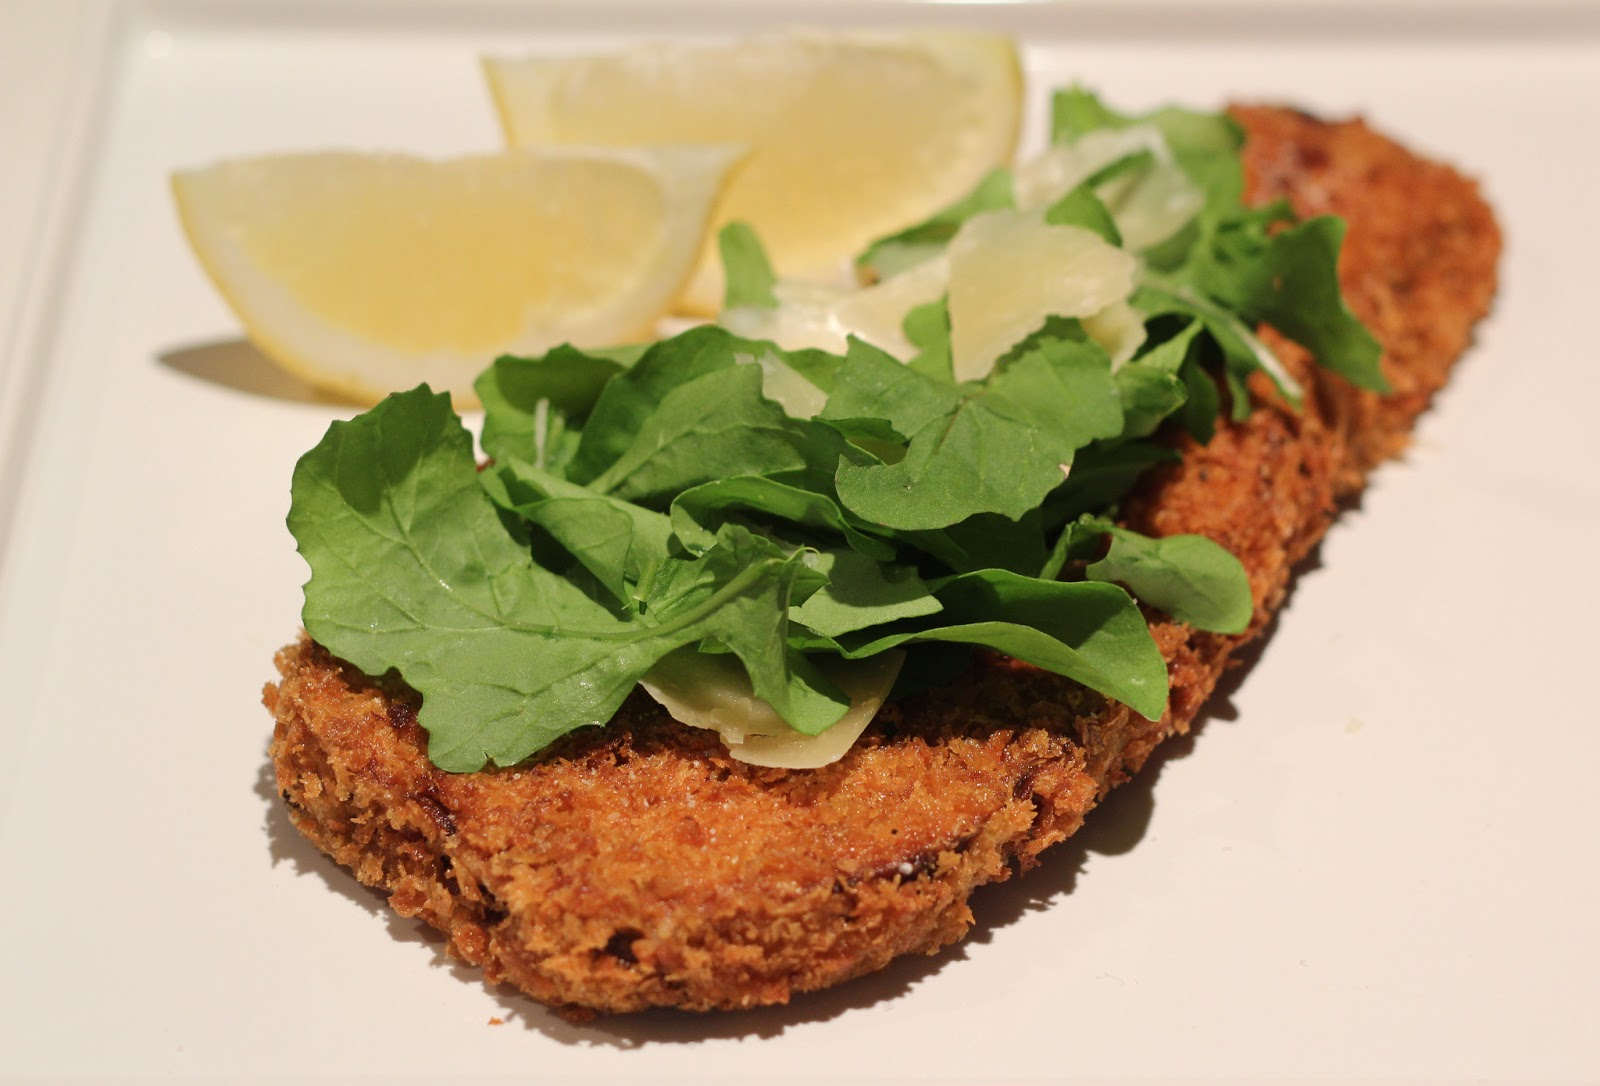 Lexi's Kitchen: BREADED EGGPLANT WITH ARUGULA AND PARMESAN